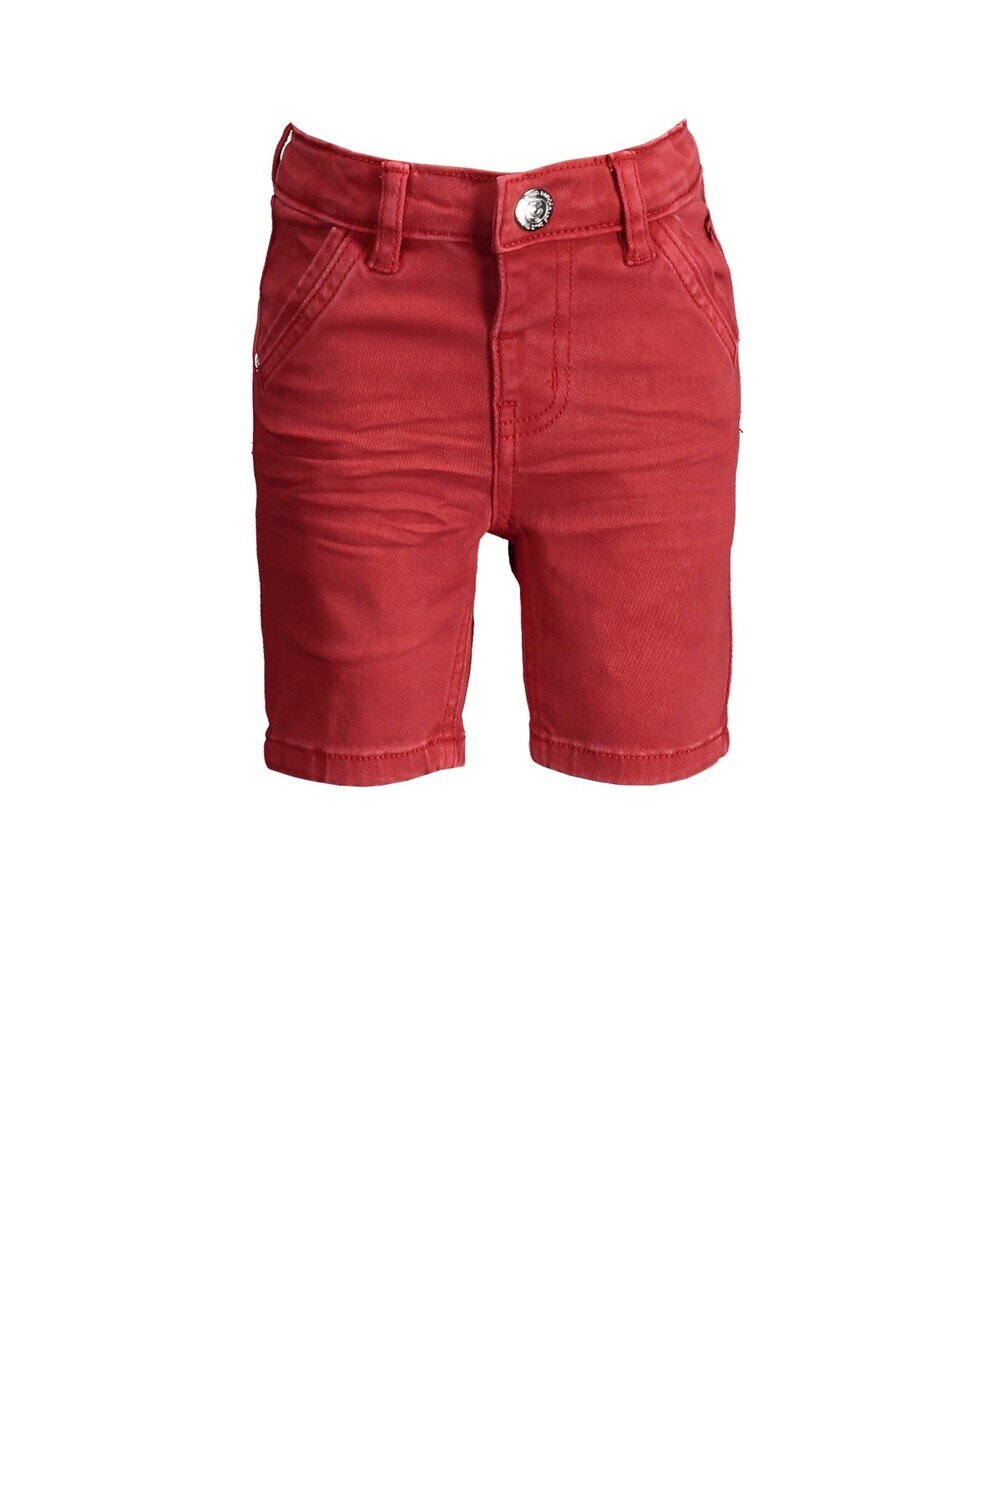 Le chic Garcon jeans short Red